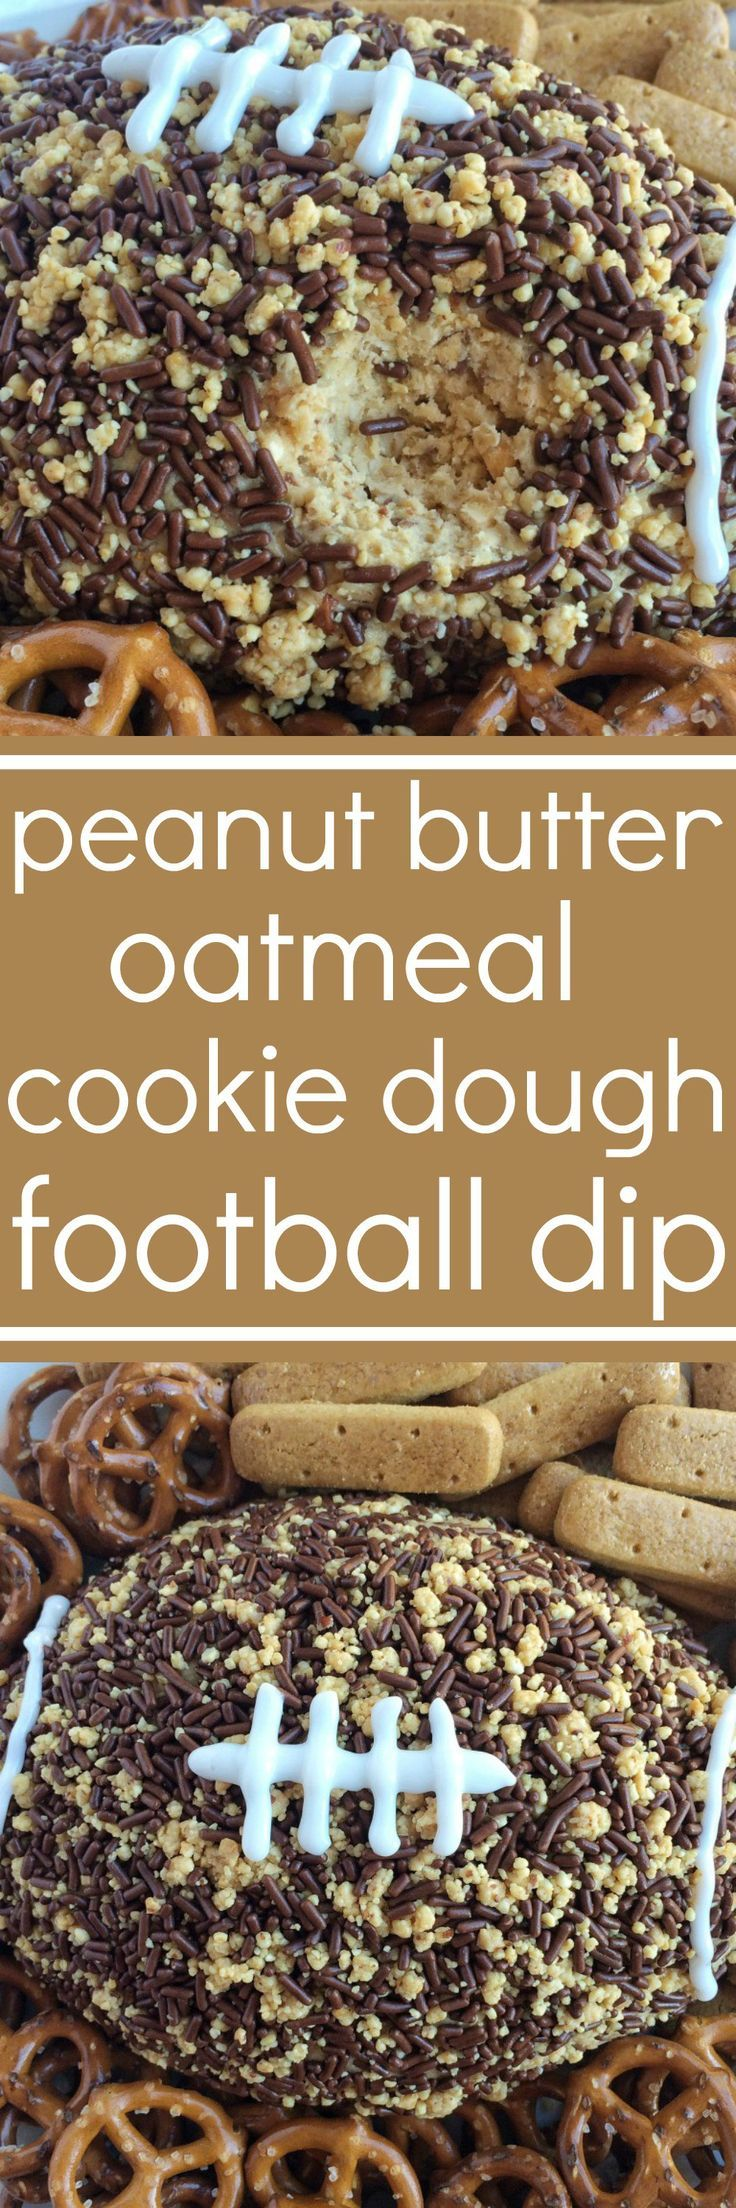 This snickers peanut butter oatmeal cookie dough football dip is sure to be a hit at your football party! An easy oatmeal cookie dough (no egg!) with peanut butter, and filled with crushed snickers peanut butter chocolate bars. The outside is covered in c